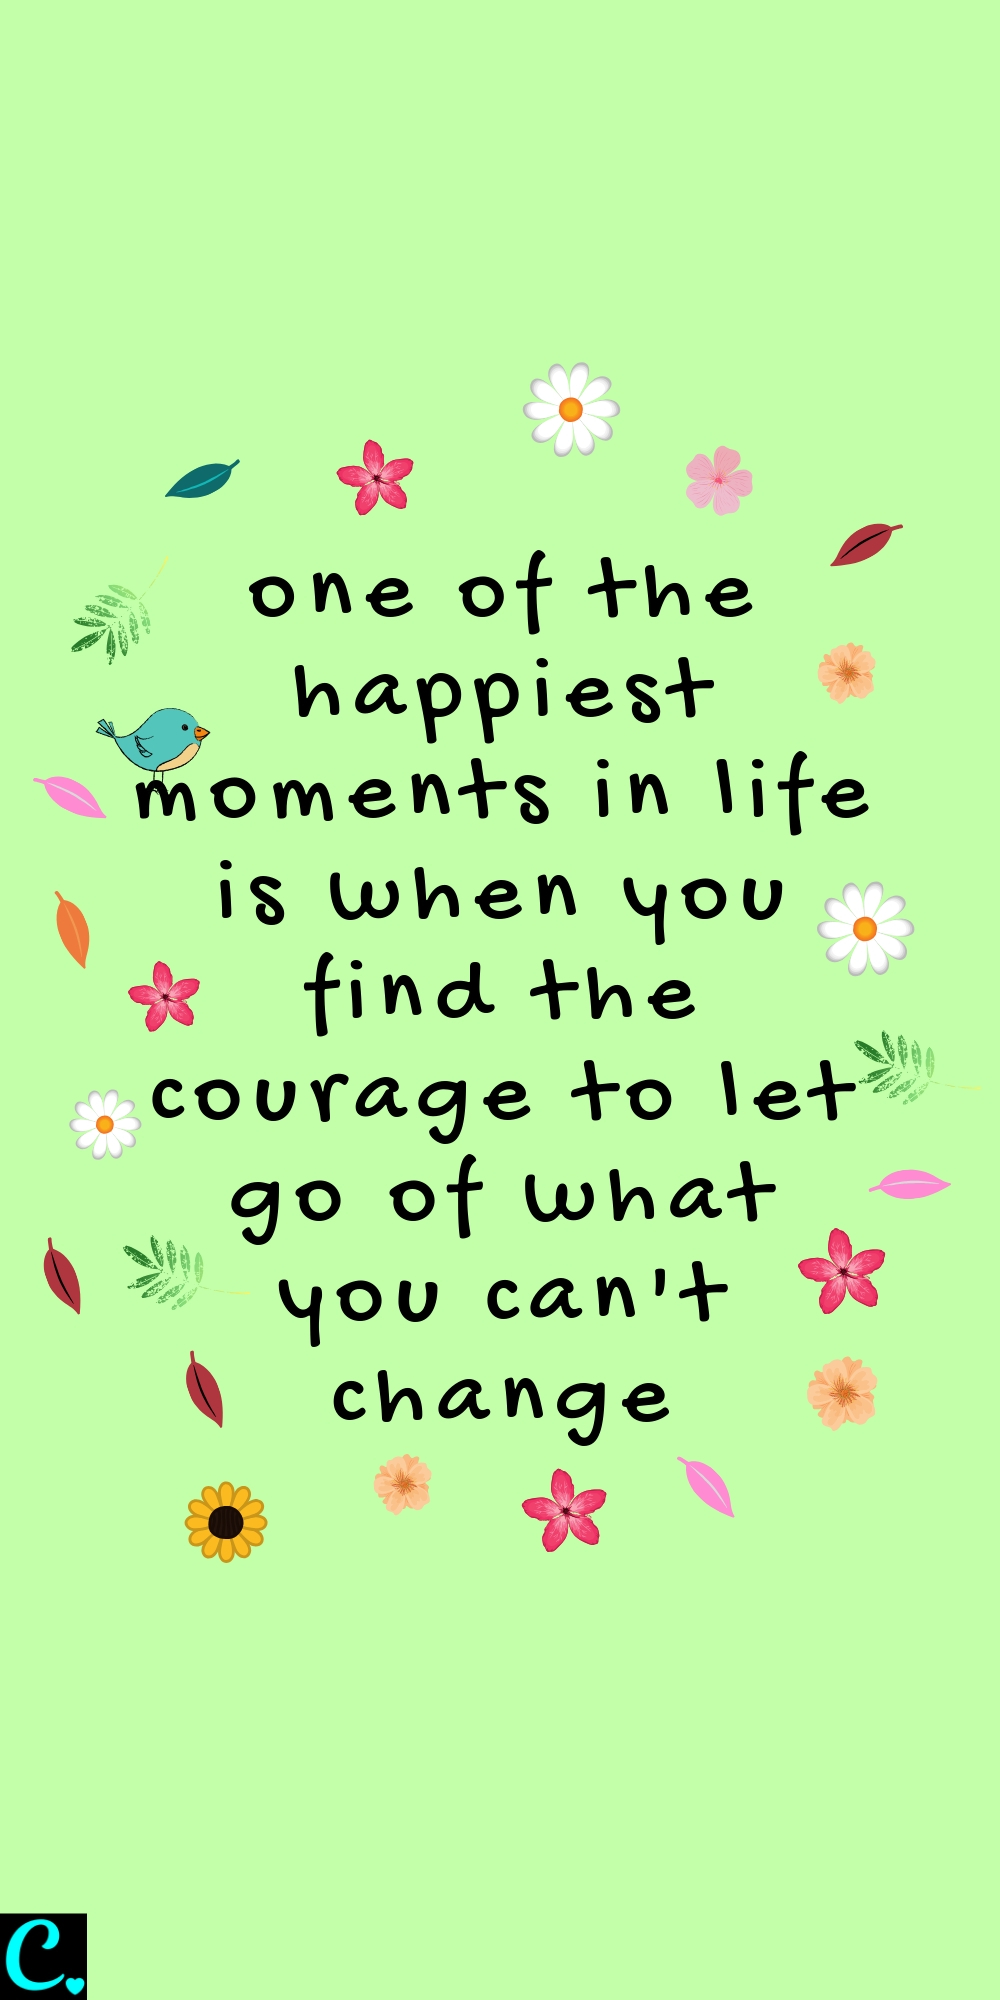 one of the happiest moments in life is when you find the courage to let go of what you can't change#happinessquote #positivequotes #braveryquotes